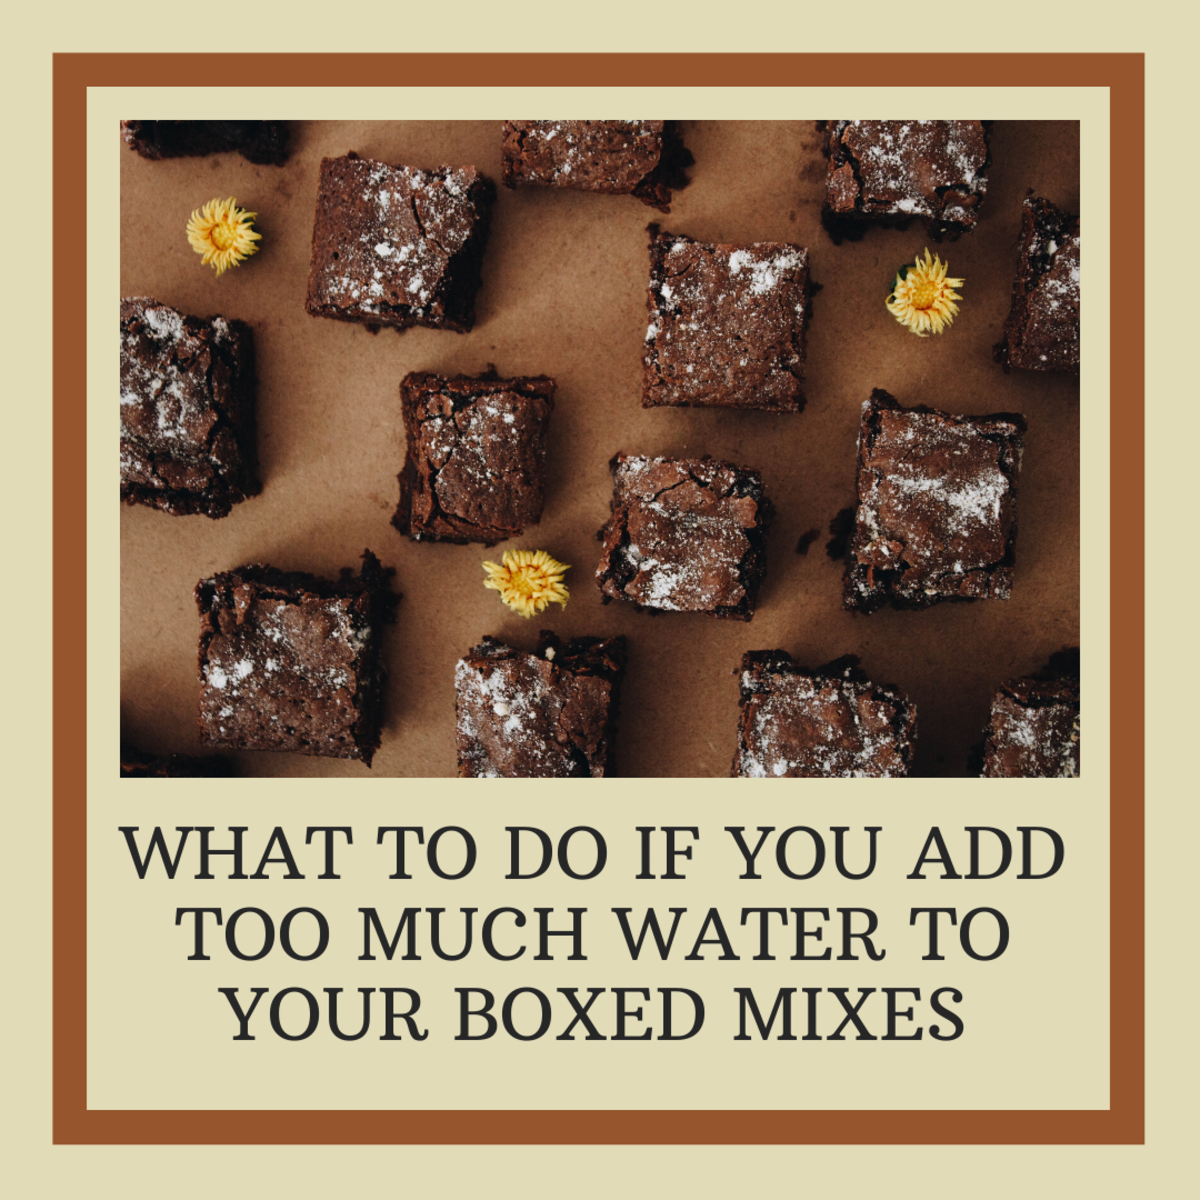 What to Do if You Add too Much Water to Your Boxed Mixes